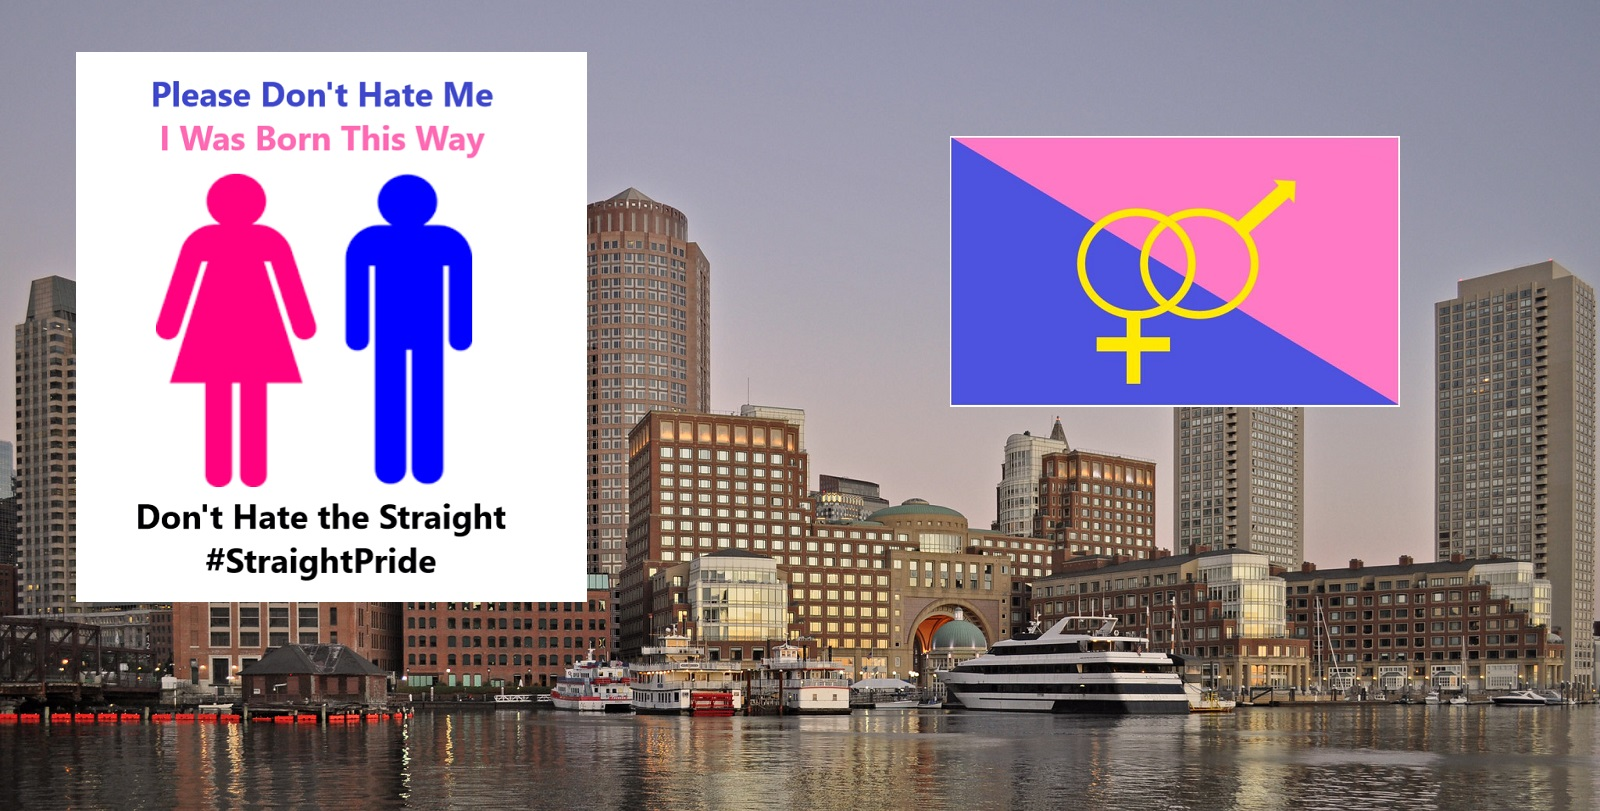 Group pushes Boston 'straight pride' parade, sparks backlash